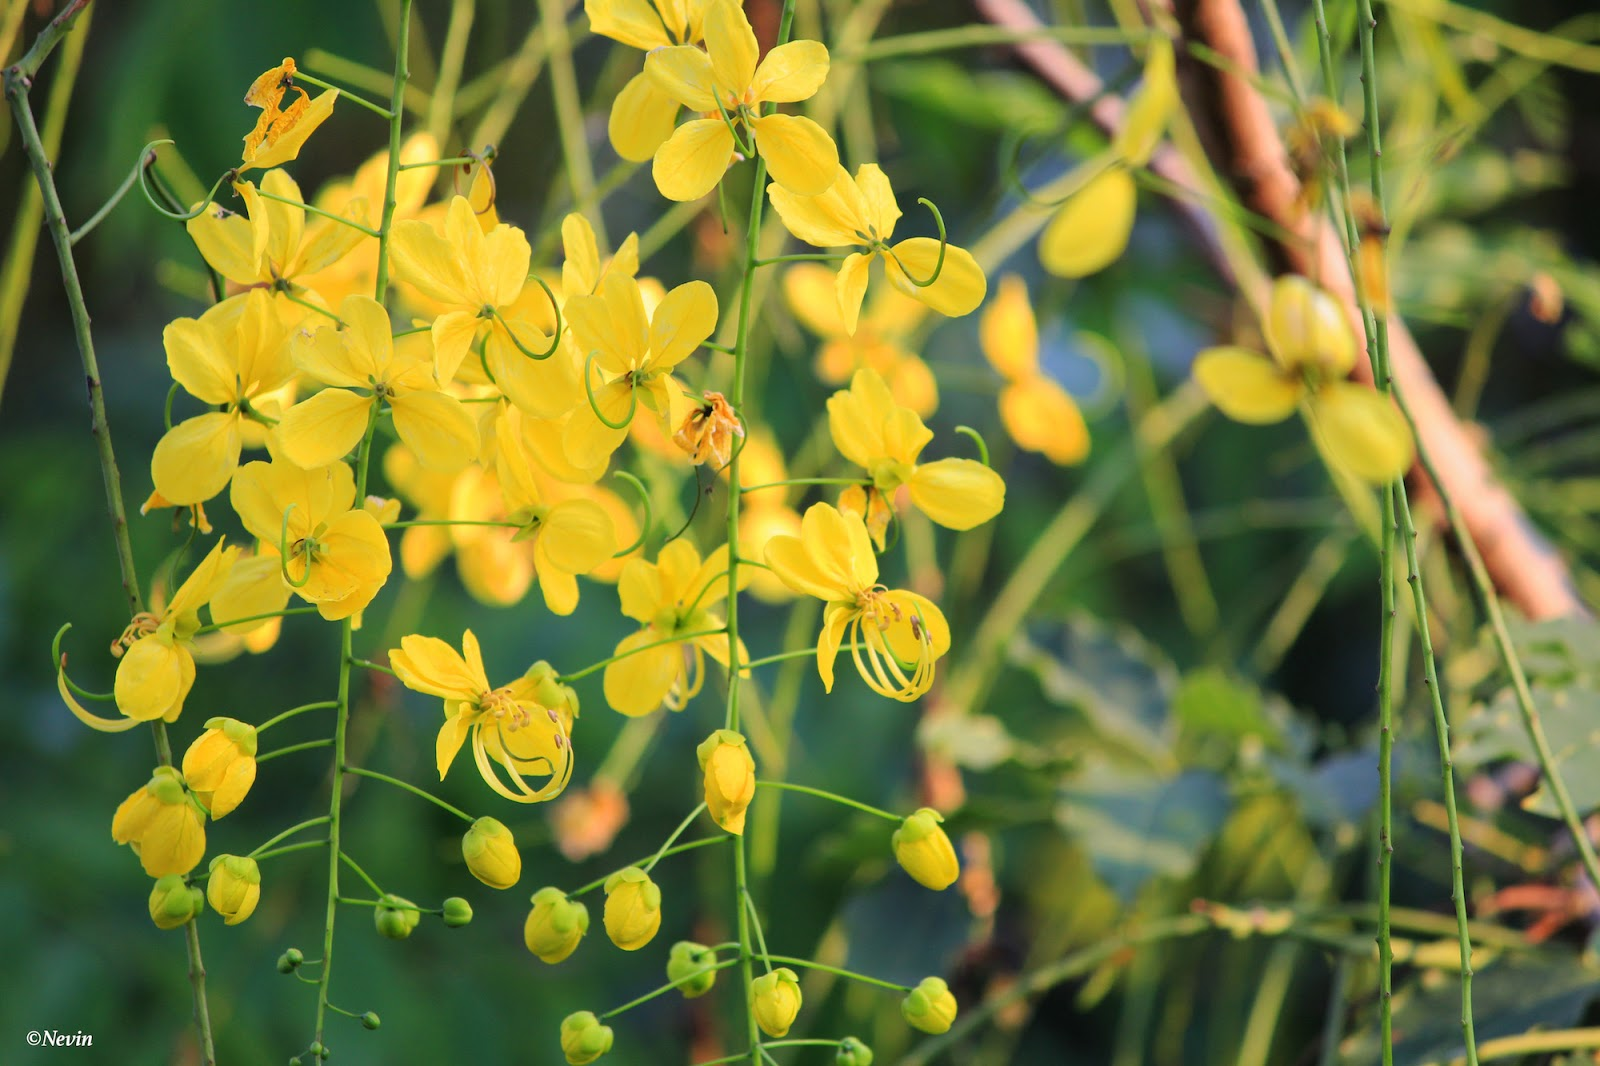 Beautiful flowers of the golden shower tree through the lens the golden shower tree or cassia fistula is a flowering plant native to the indian subcontinent and adjacent regions of southeast asia izmirmasajfo